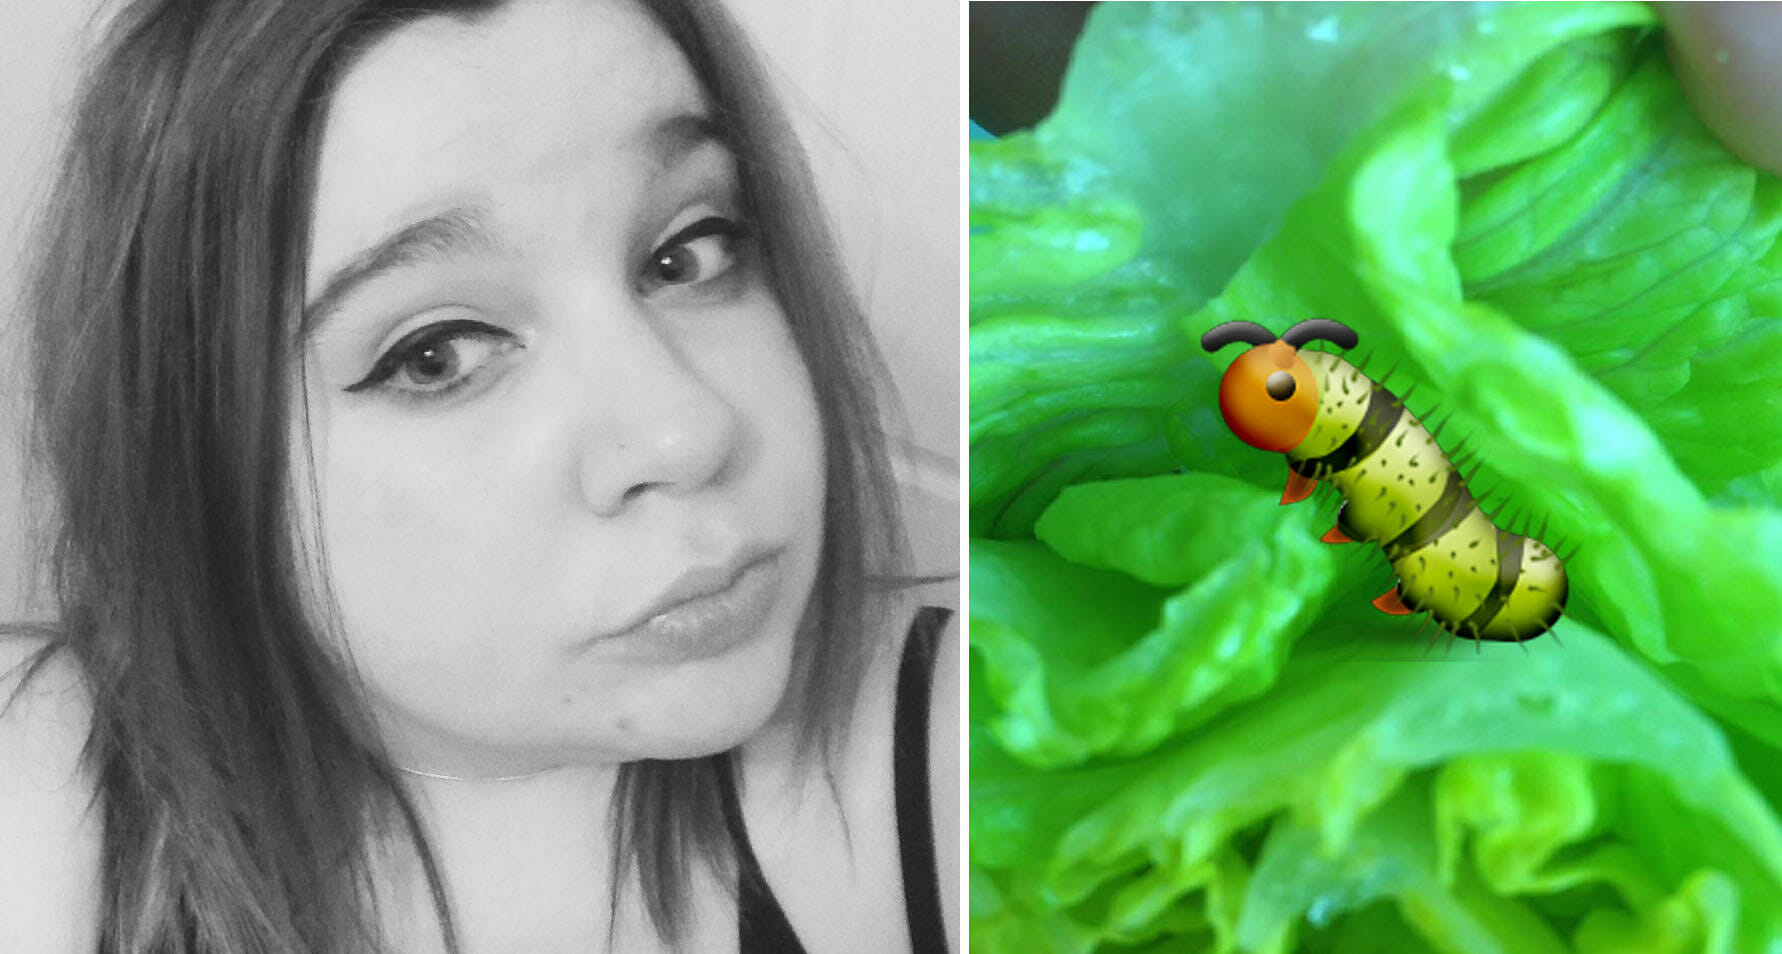 Epic Customer Service By Tesco To Lady Who Found A Caterpillar In Her Lettuce - World Of Buzz 8